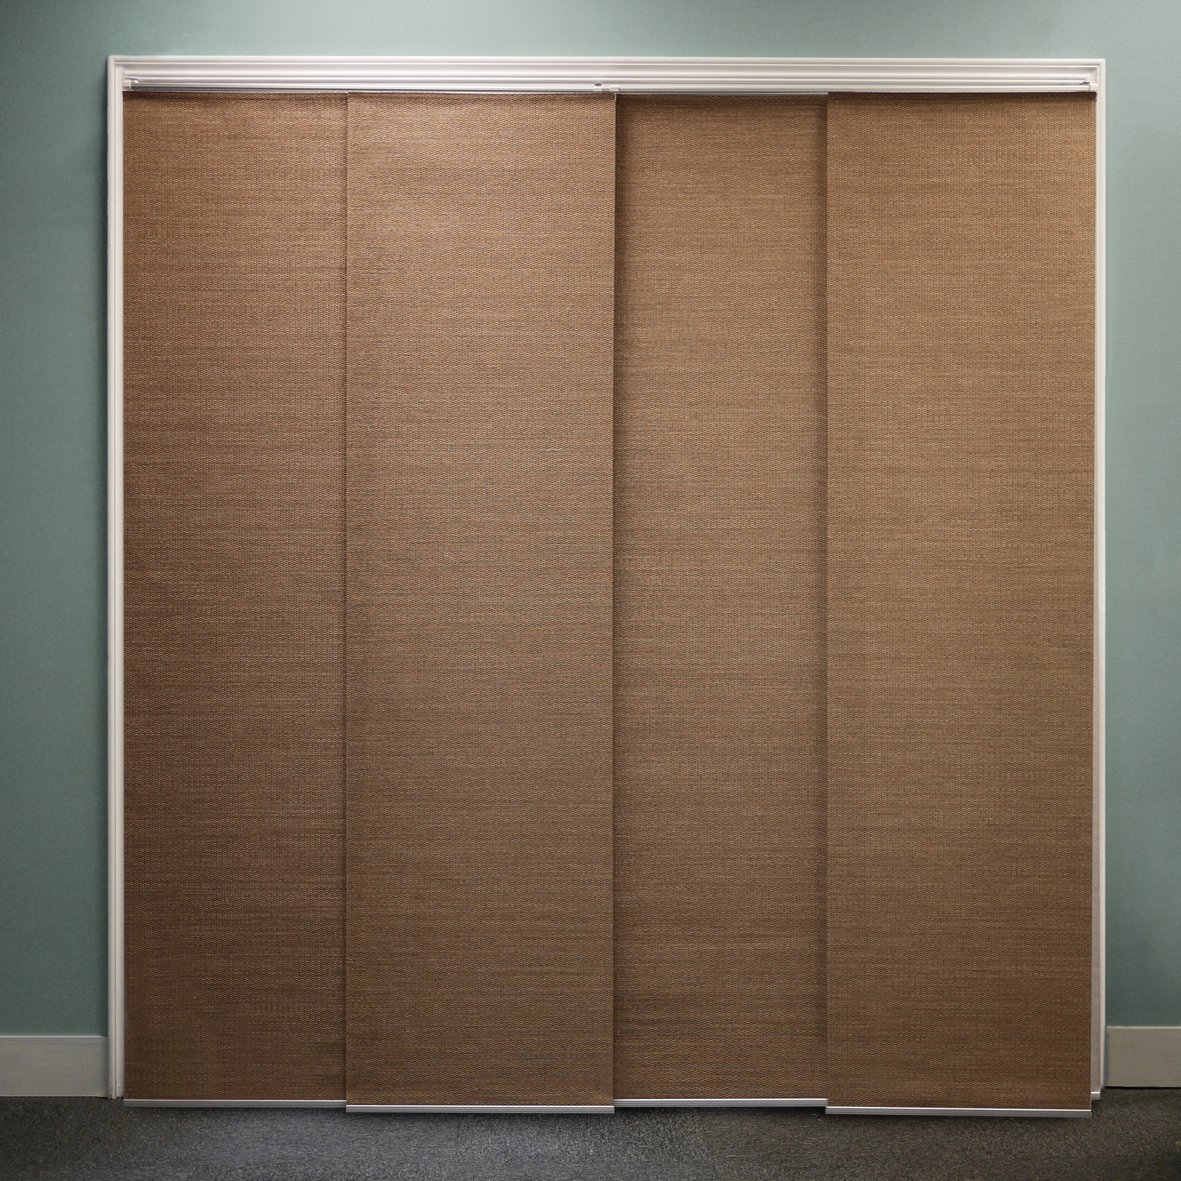 Brown Cream Fabric Panel Sliding Curtain With Floral And Stripped Regarding Fabric Doorway Curtains (Image 2 of 15)